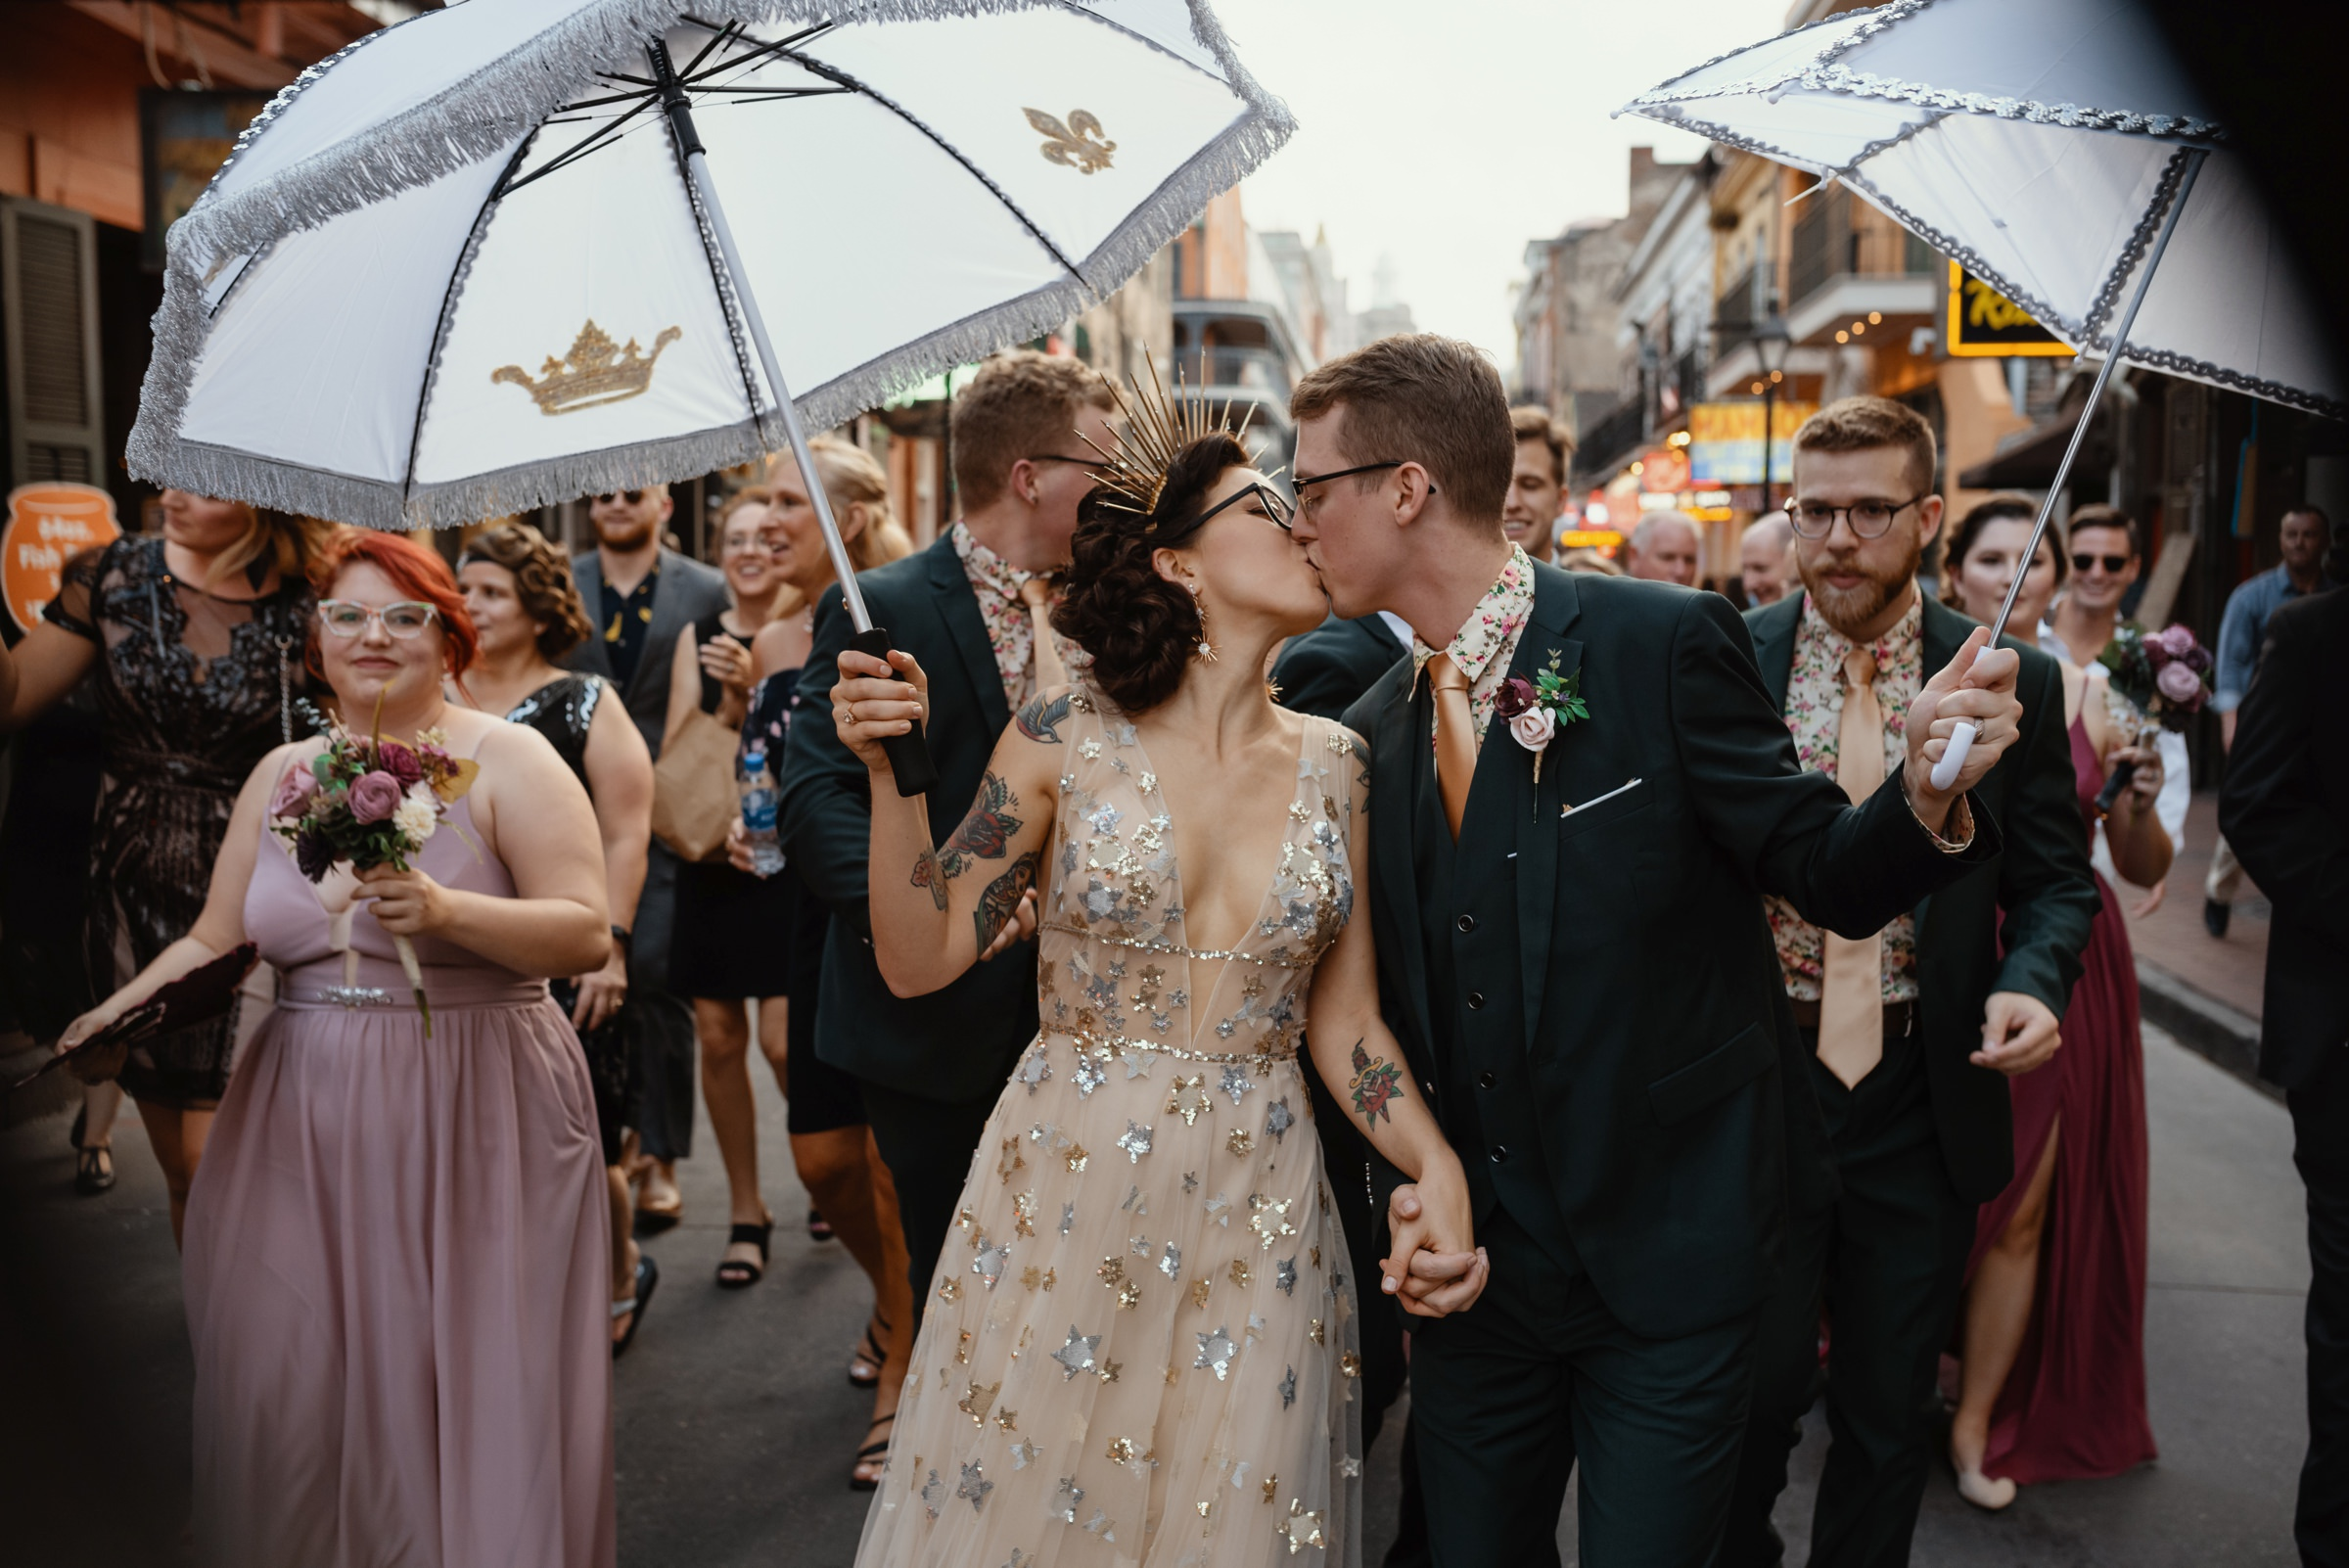 bride and groom wedding parade in new orleans-new orleans-austin-houston-wedding photographer - photo by Dark Roux